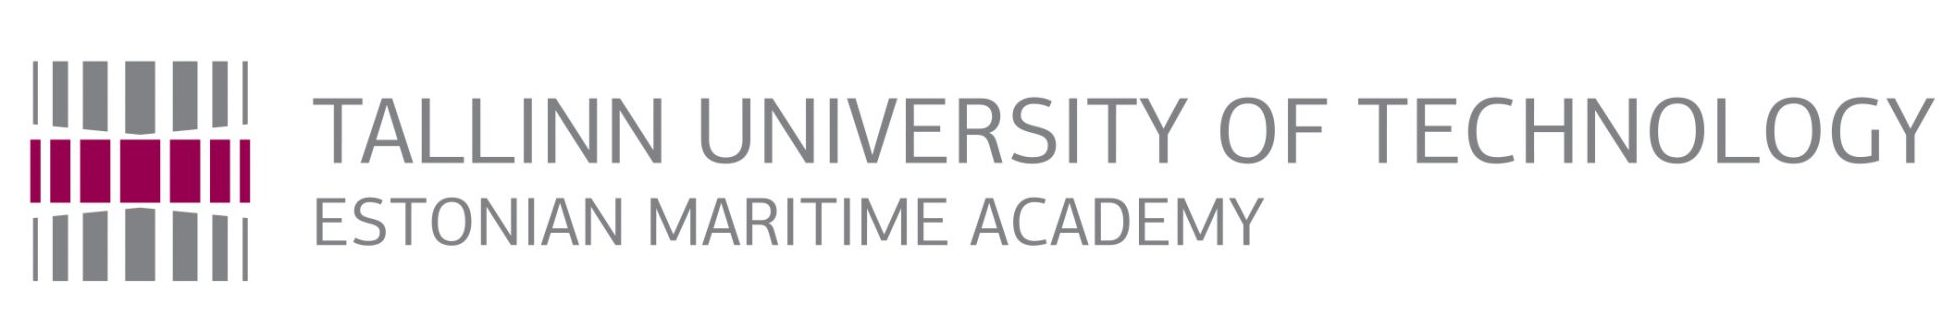 Tallinn university of technology logo.